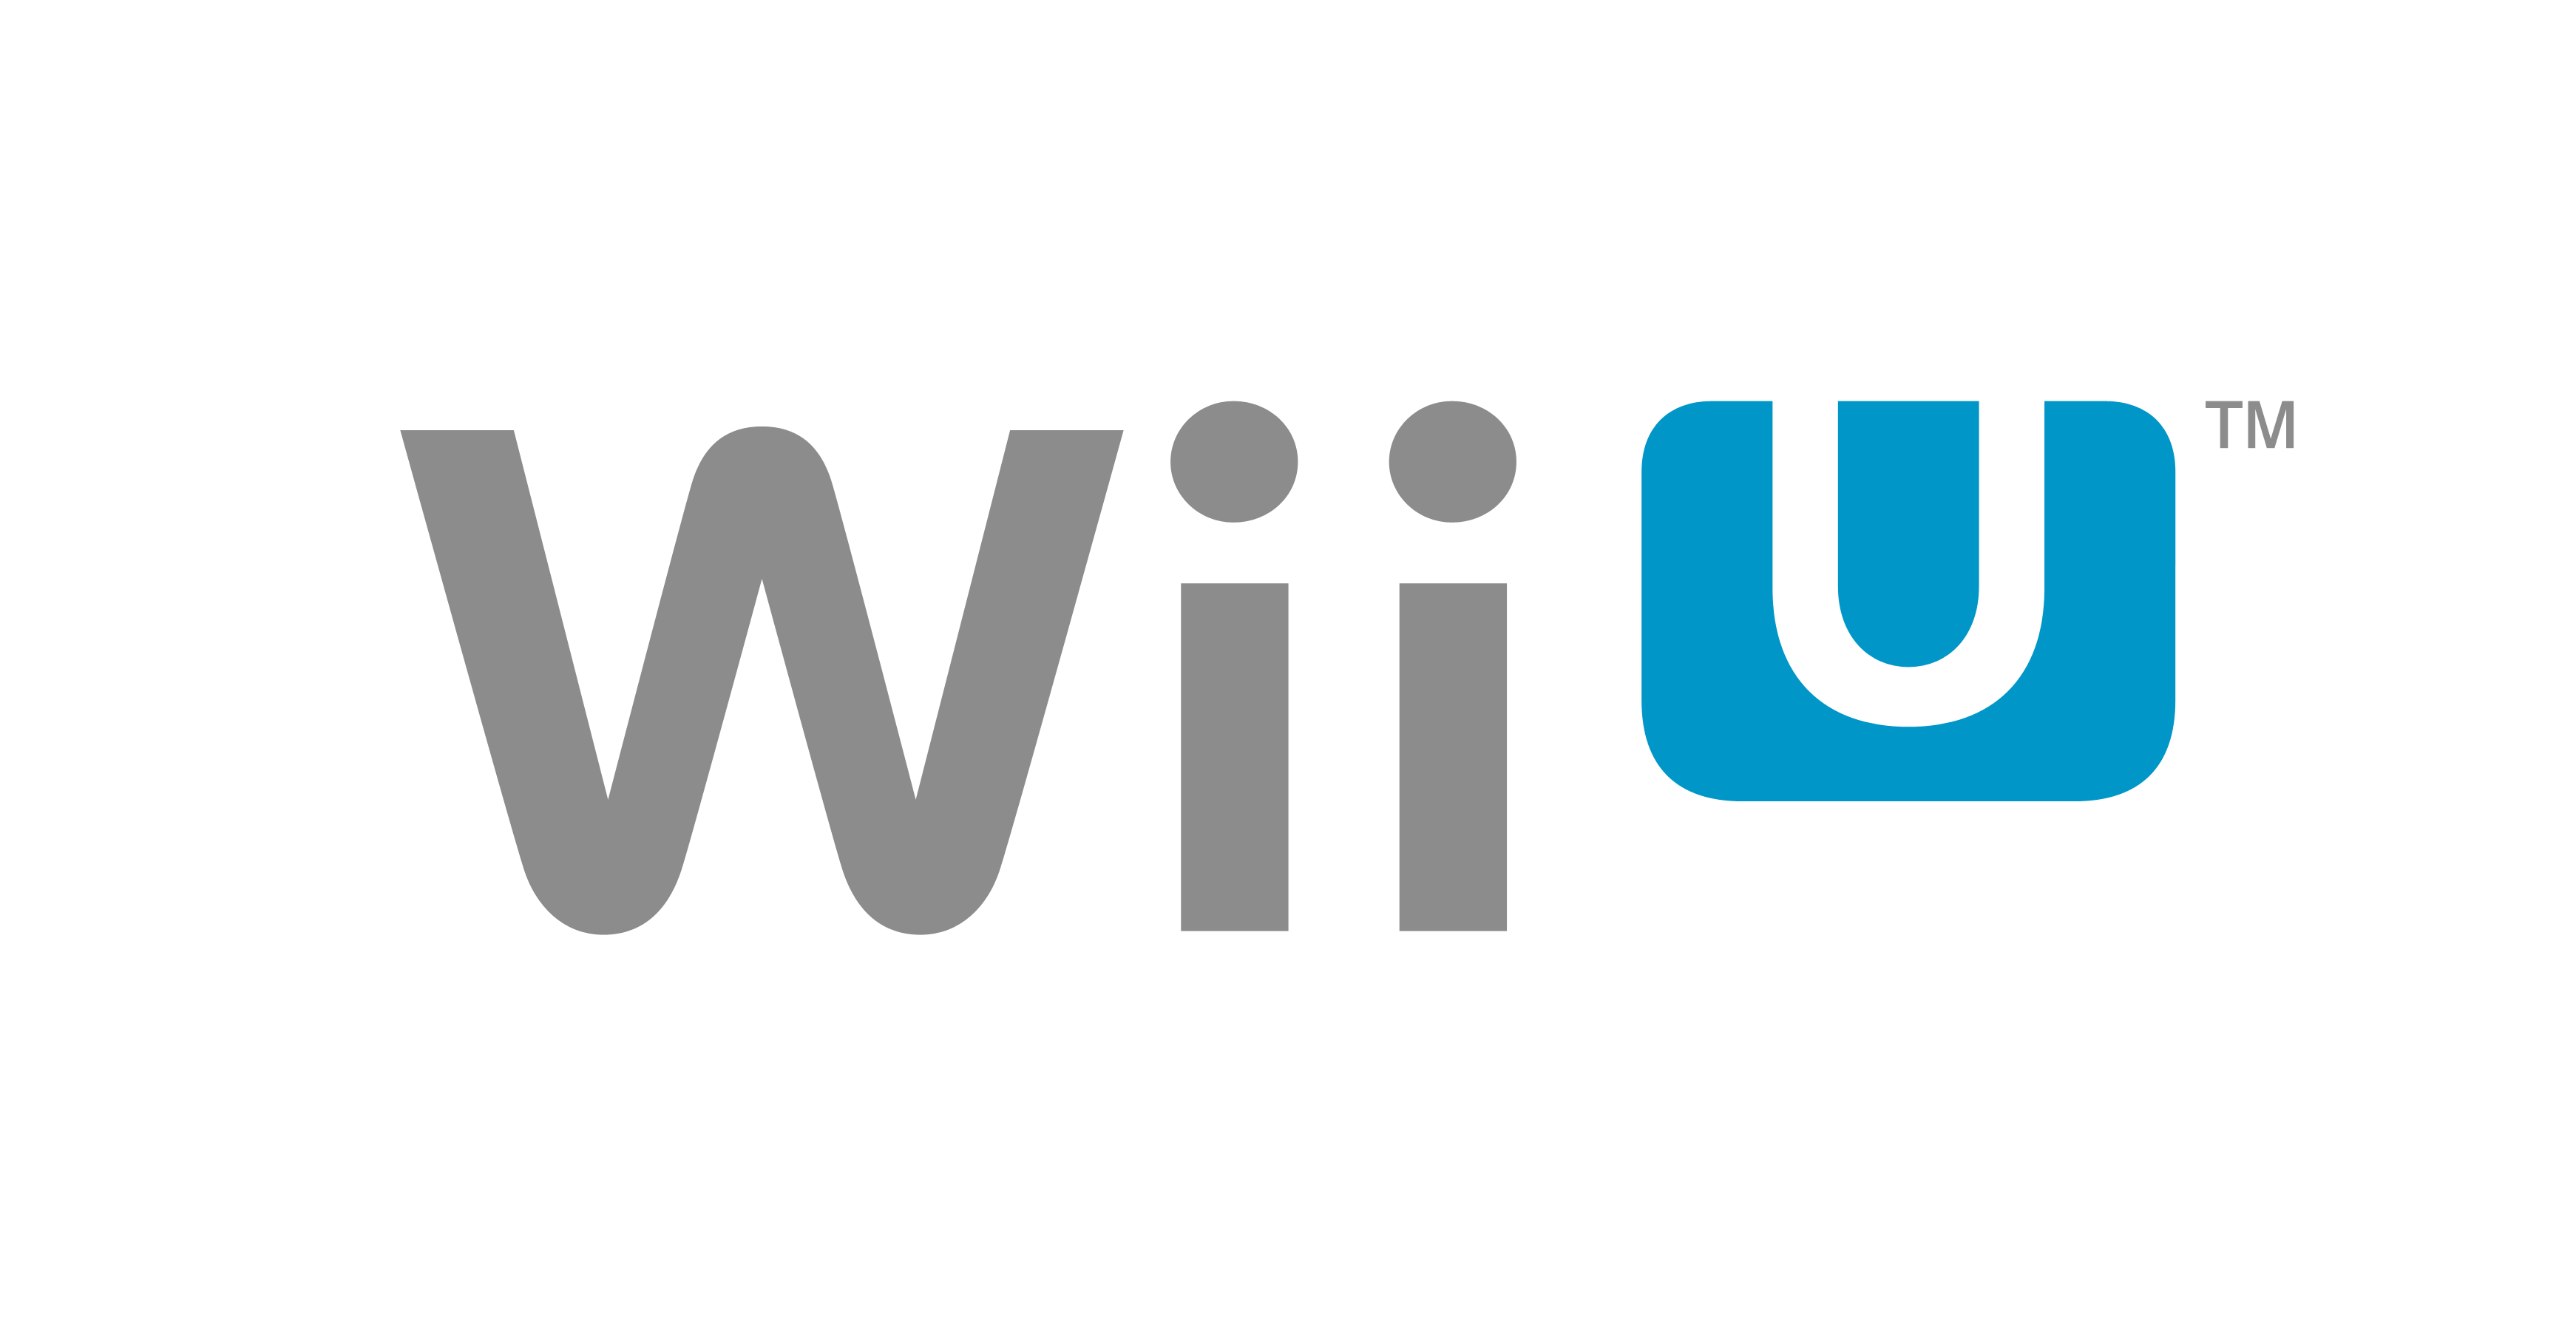 New Wii U logo confirms name is here to stay « Icrontic.